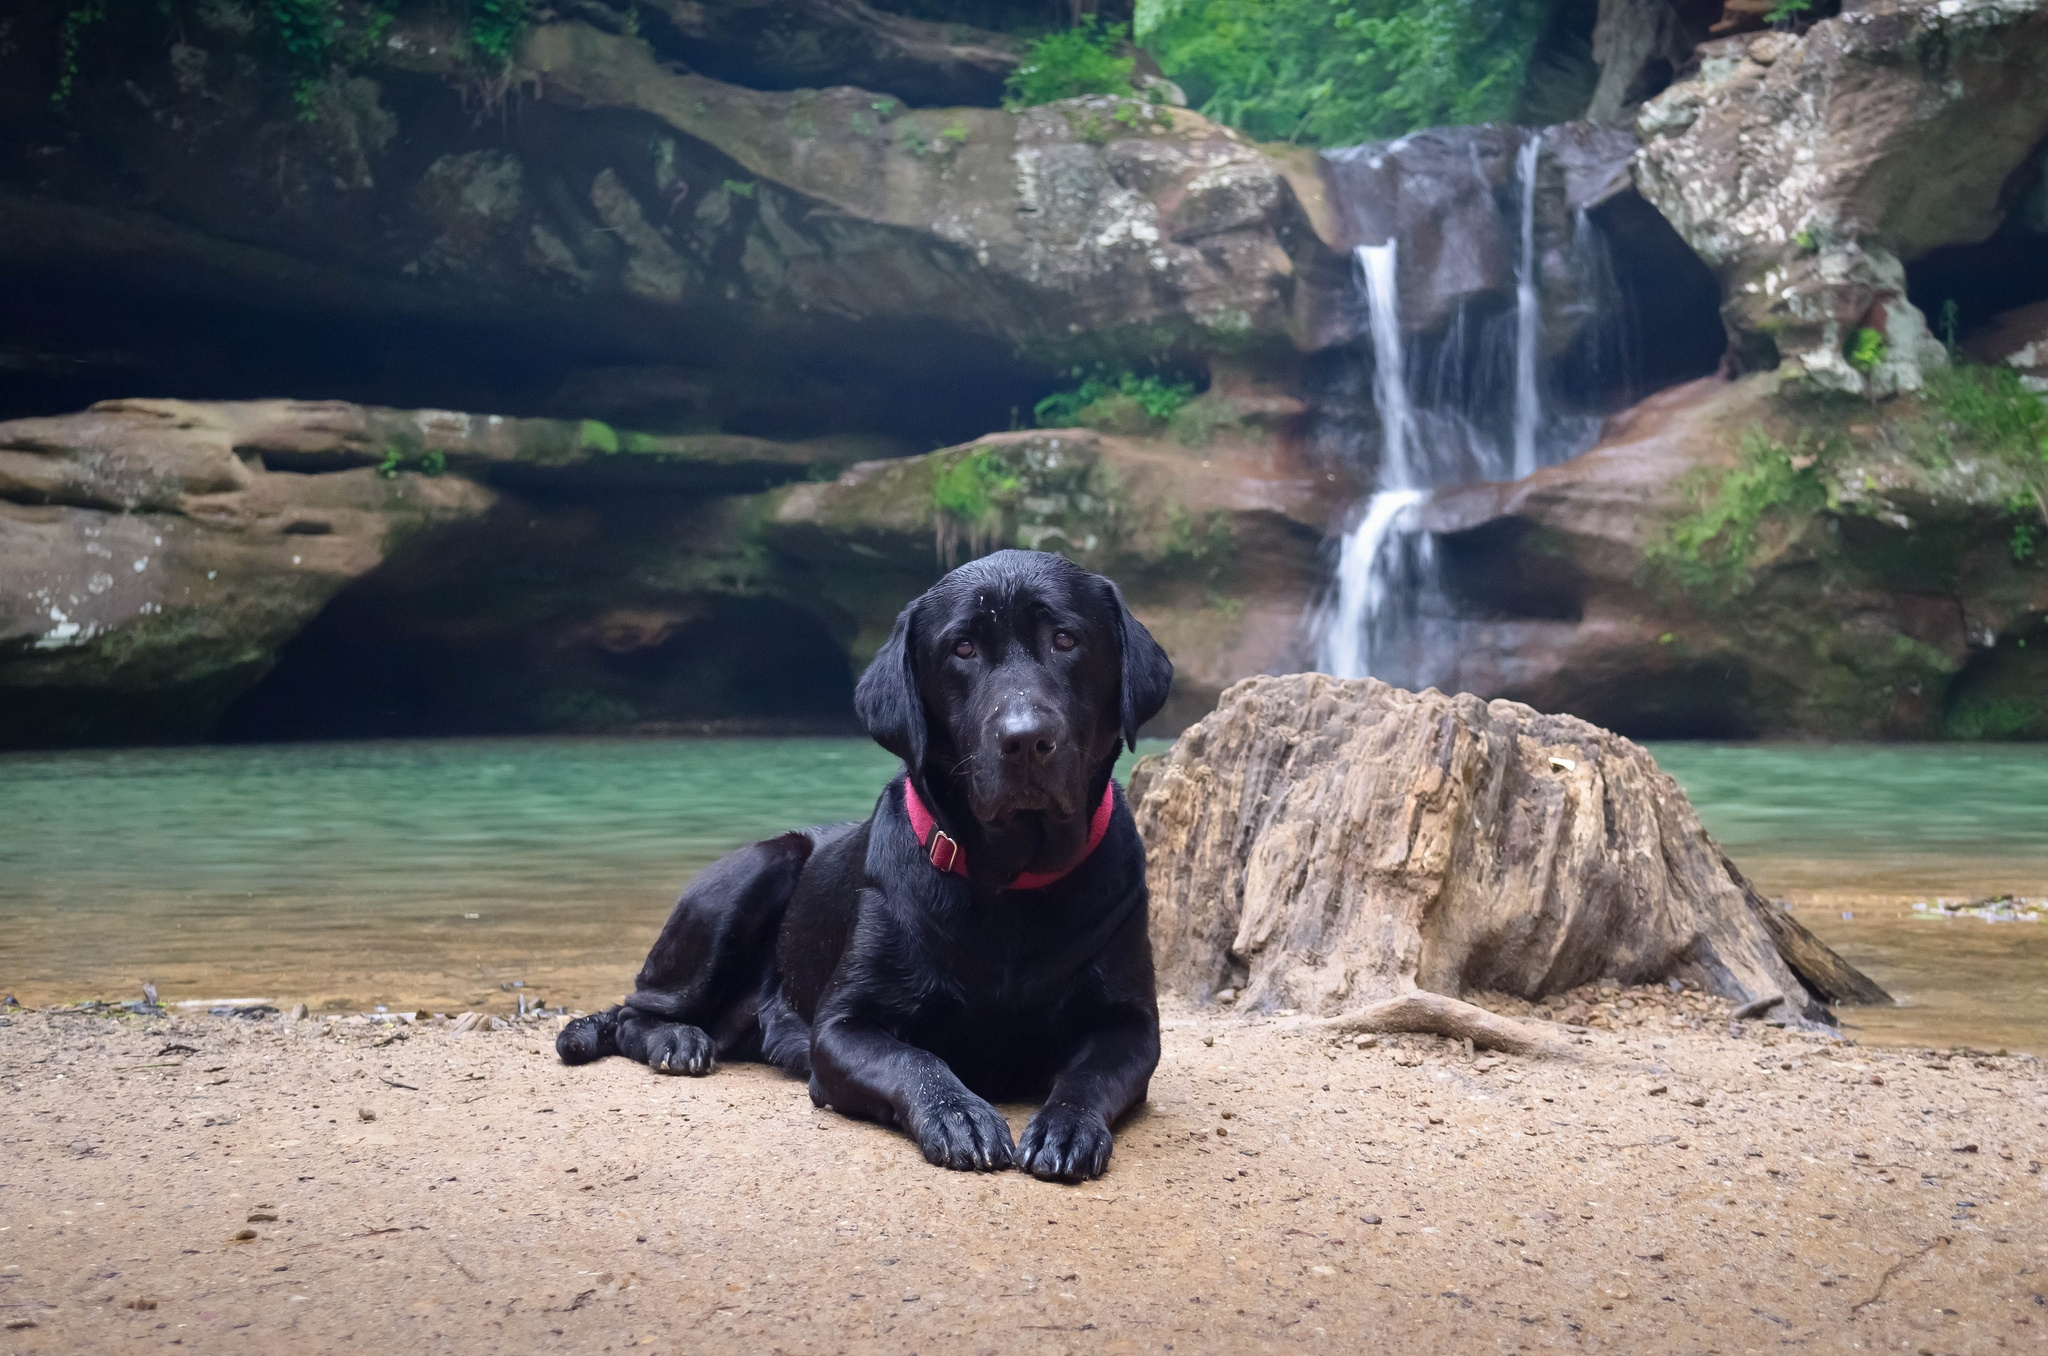 118842 download wallpaper Animals, Dog, Labrador, To Lie Down, Lie, Sand, Waterfall screensavers and pictures for free